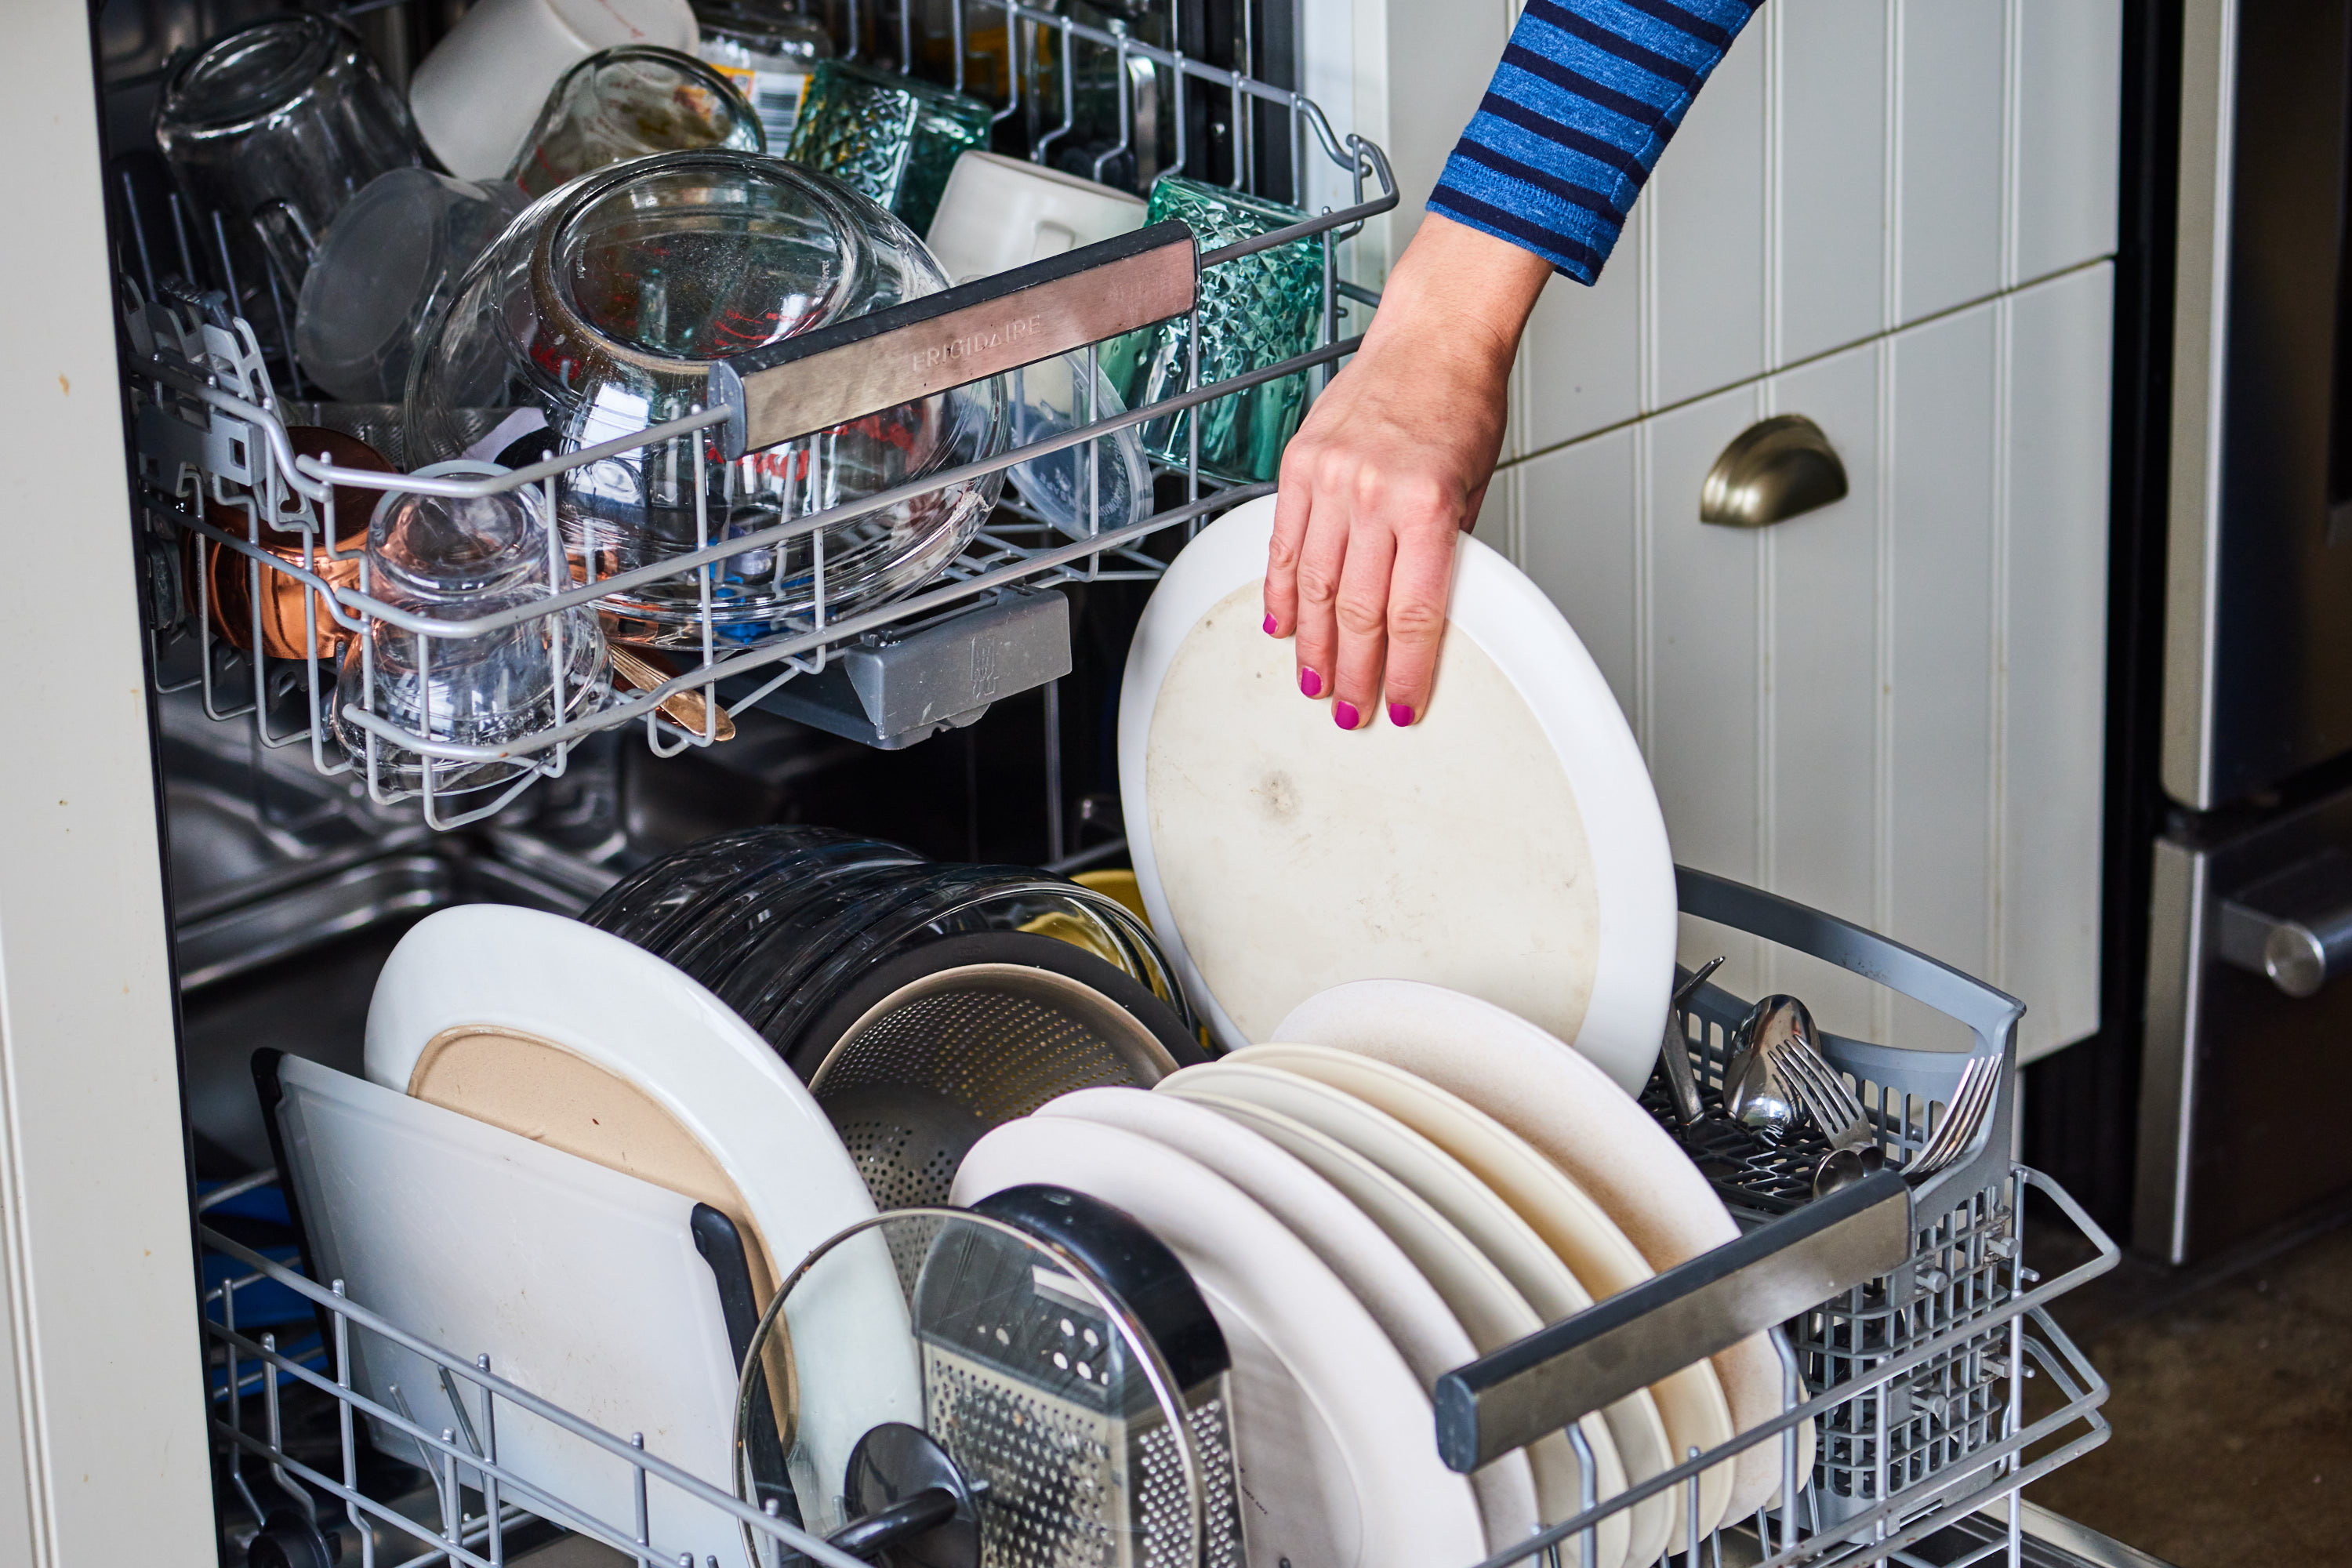 7 Things You Didn't Know About Dishwasher Detergent | Kitchn